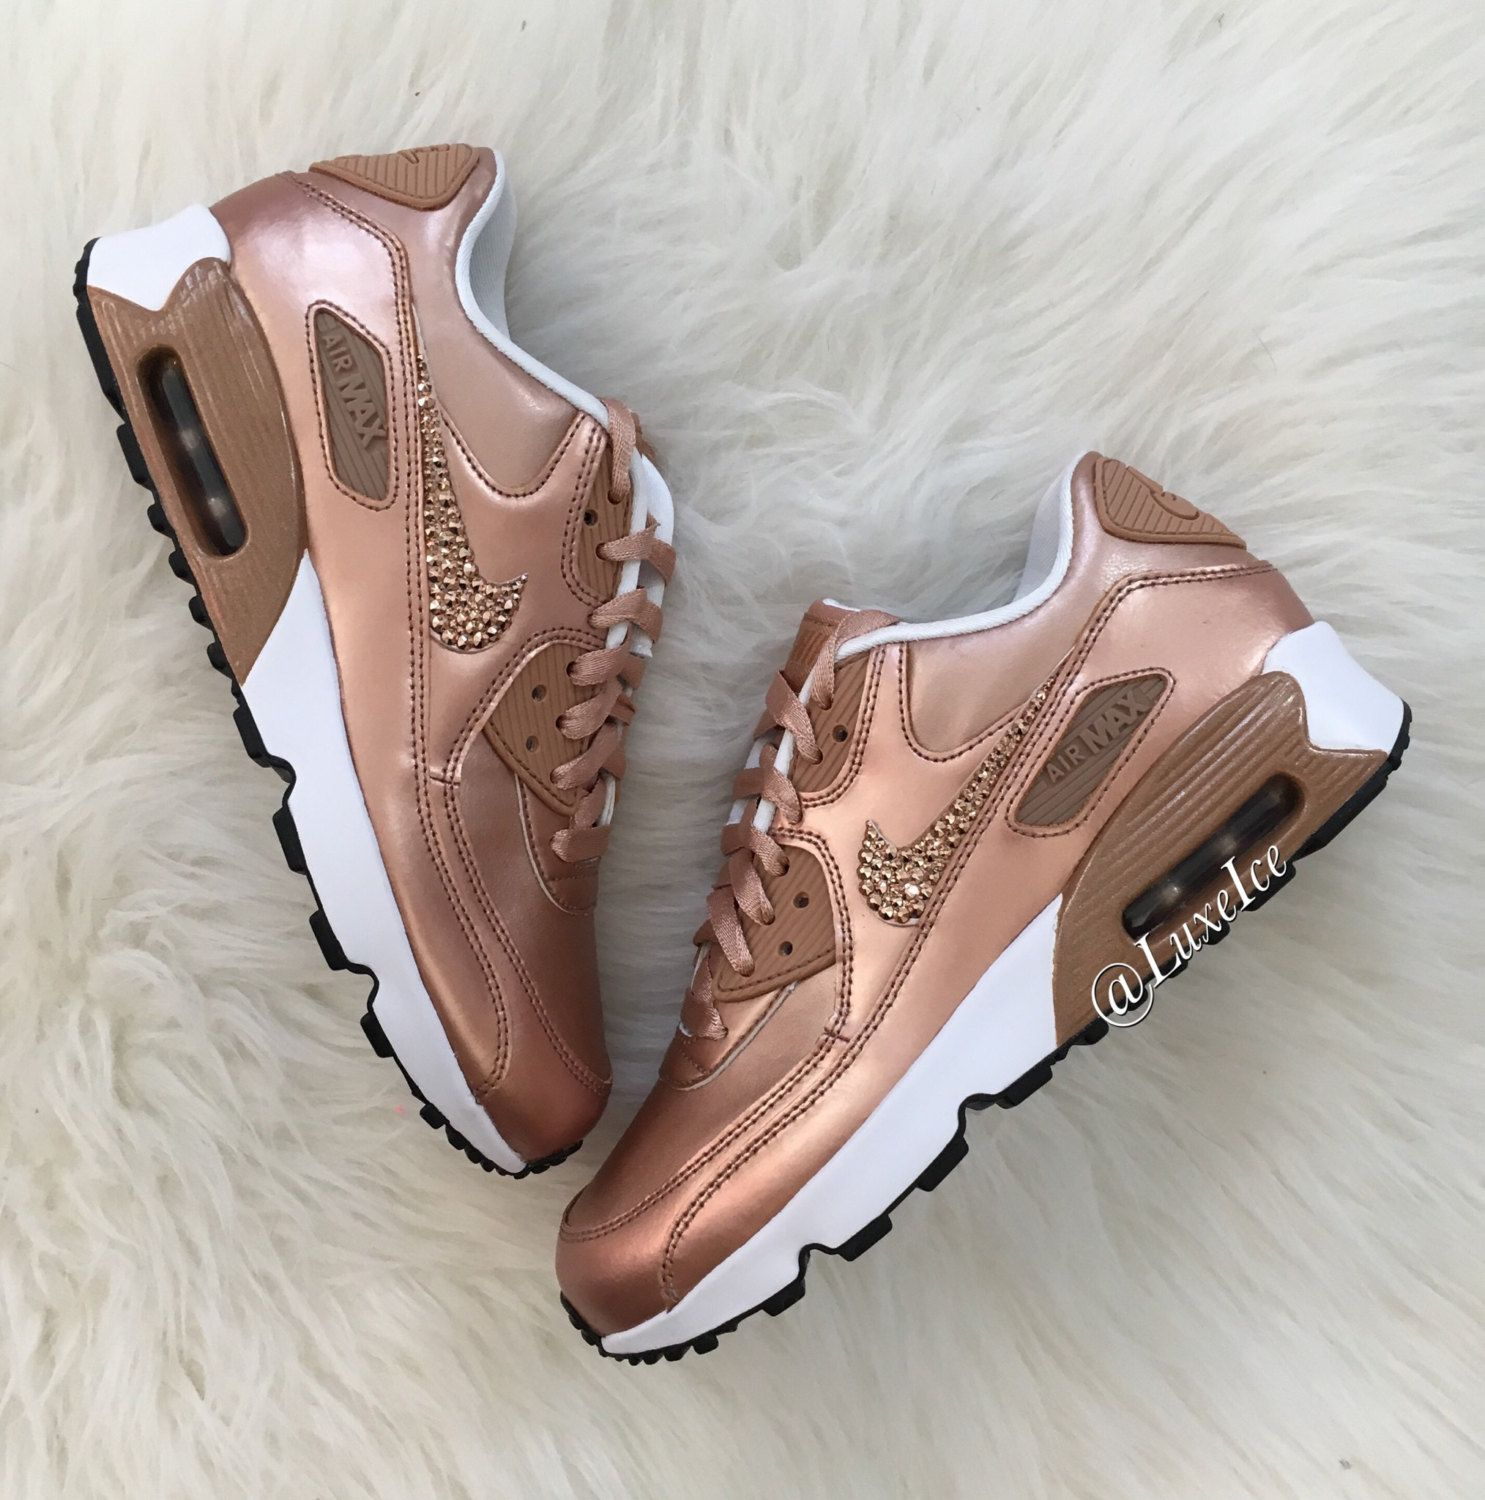 1c62a8fbbec3 Nike Air Max 90 SE Leather with SWAROVSKI® Xirius Rose-Cut Crystals. Color   Metallic Red Bronze Metallic Red Bronze FIT  True to size This style is  made in ...